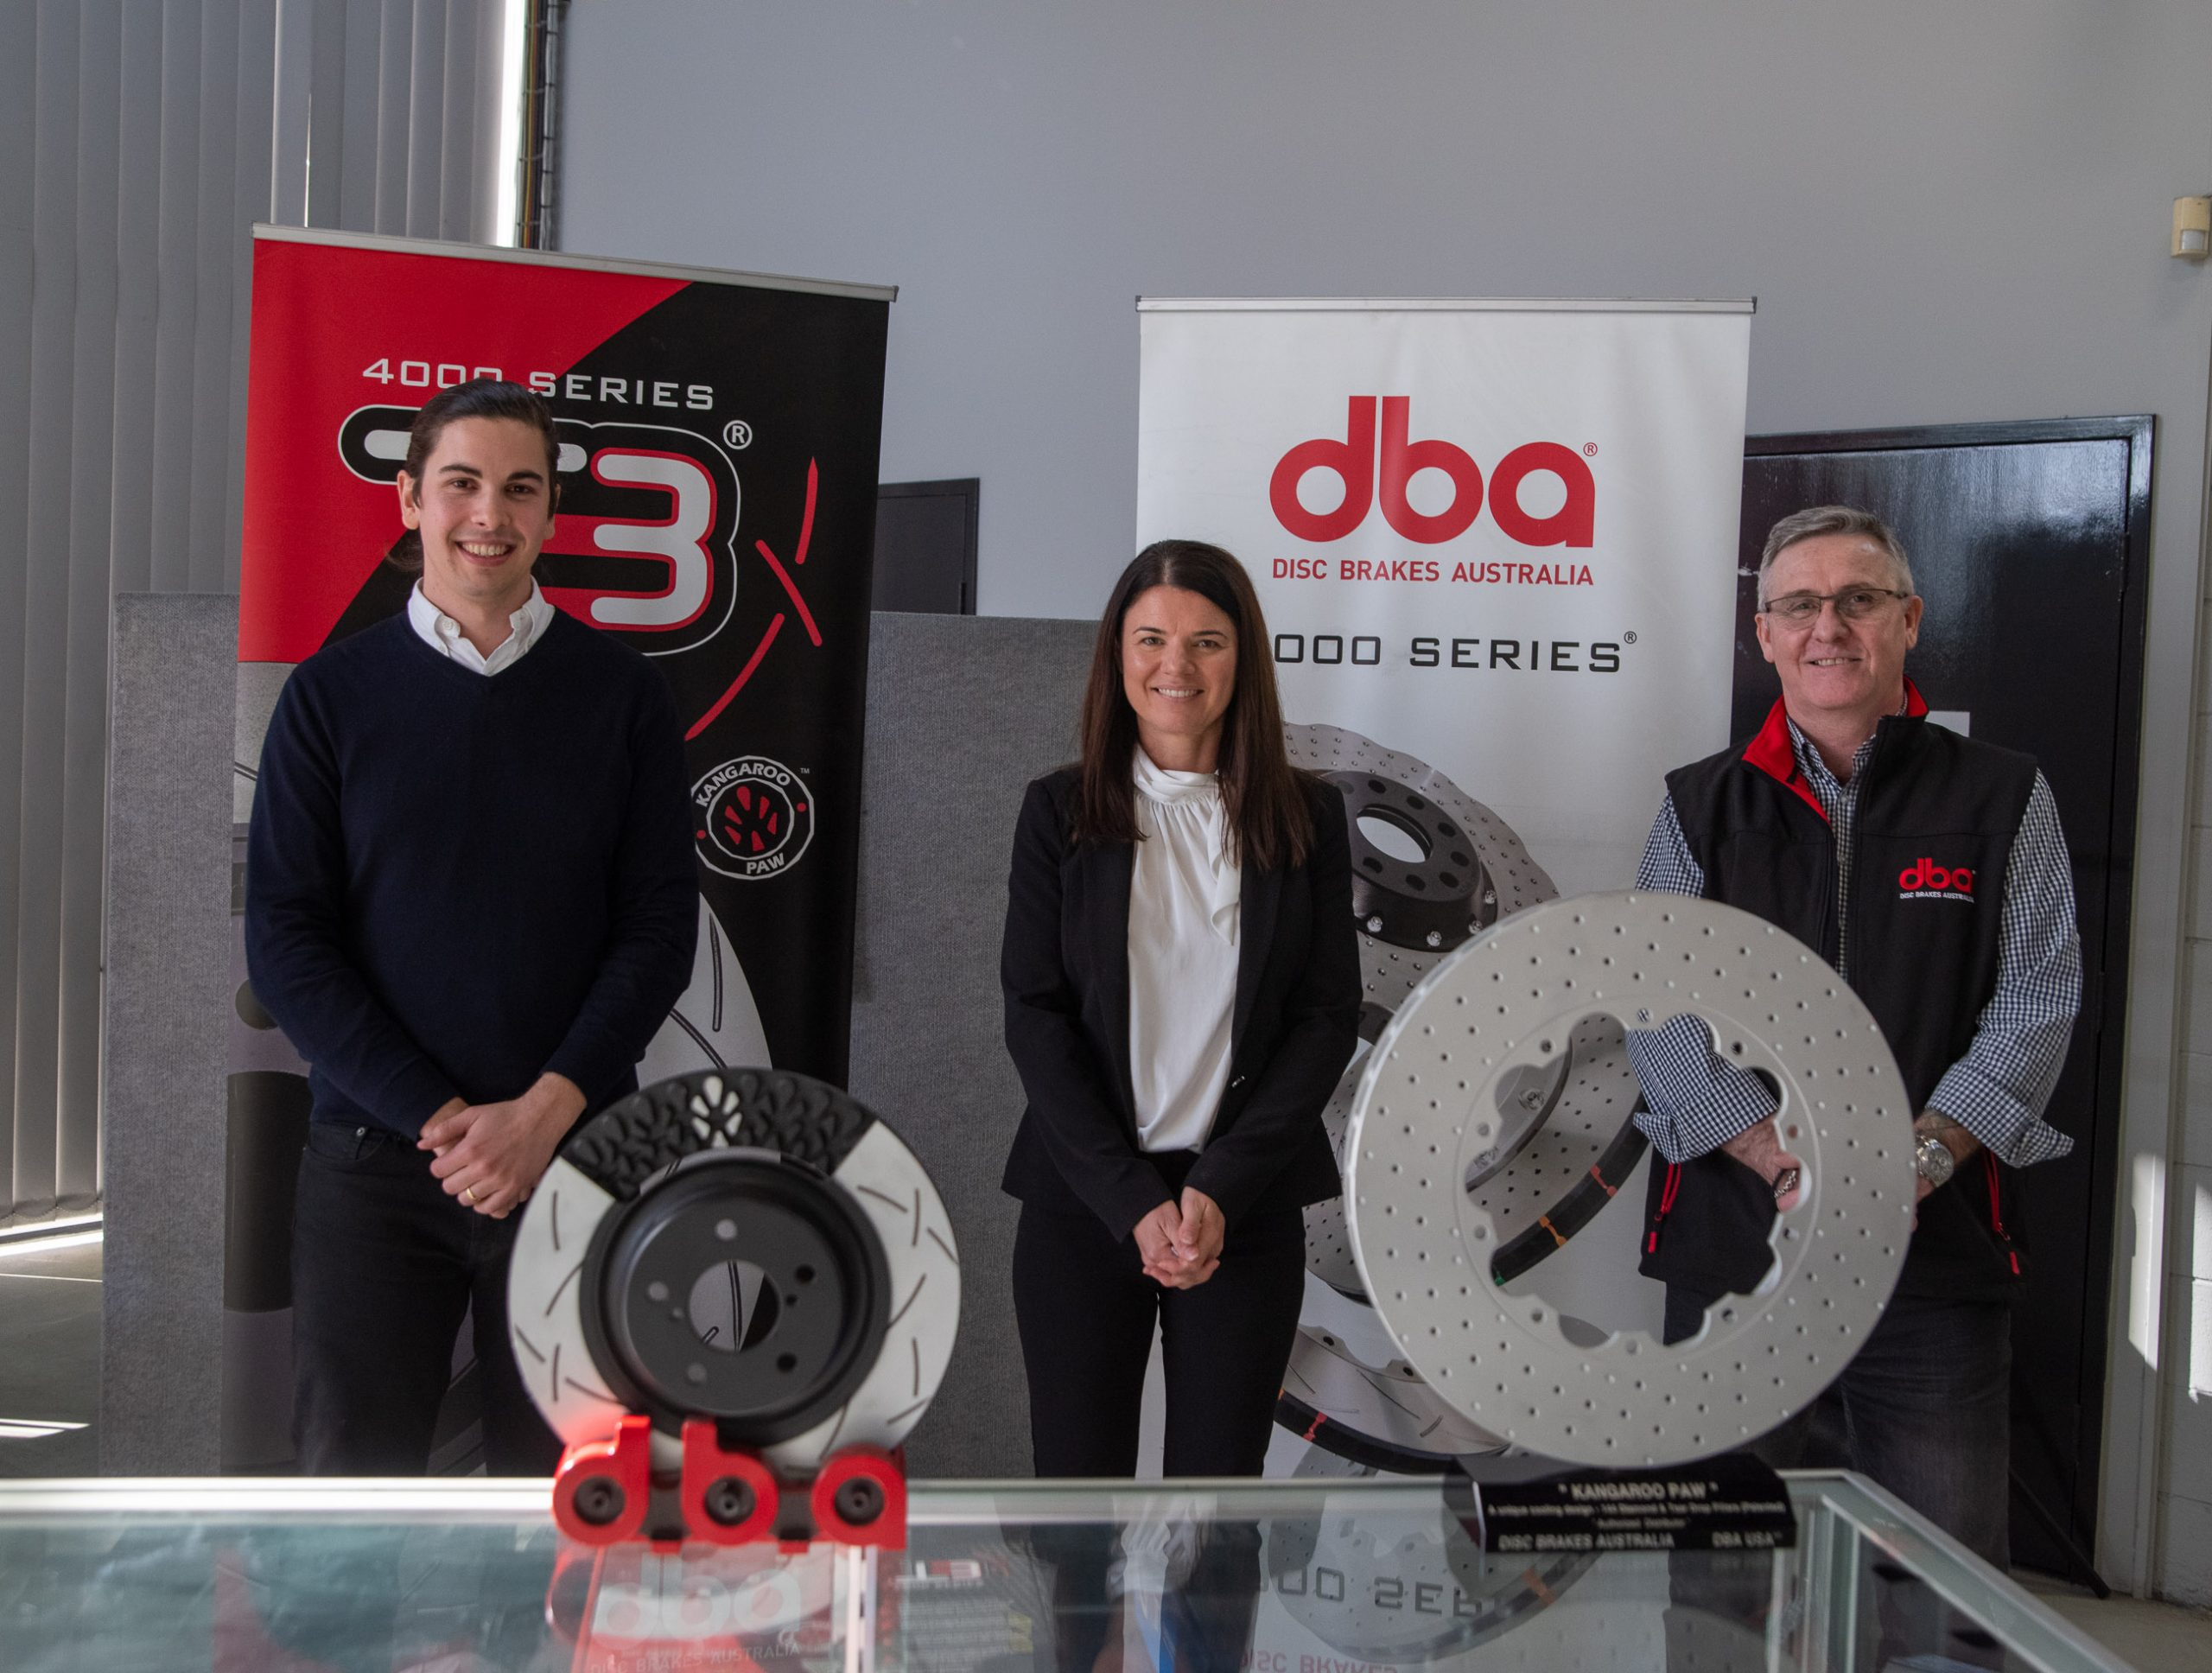 DBA REGOCNISED FOR DRIVING AUTOMOTIVE INNOVATION